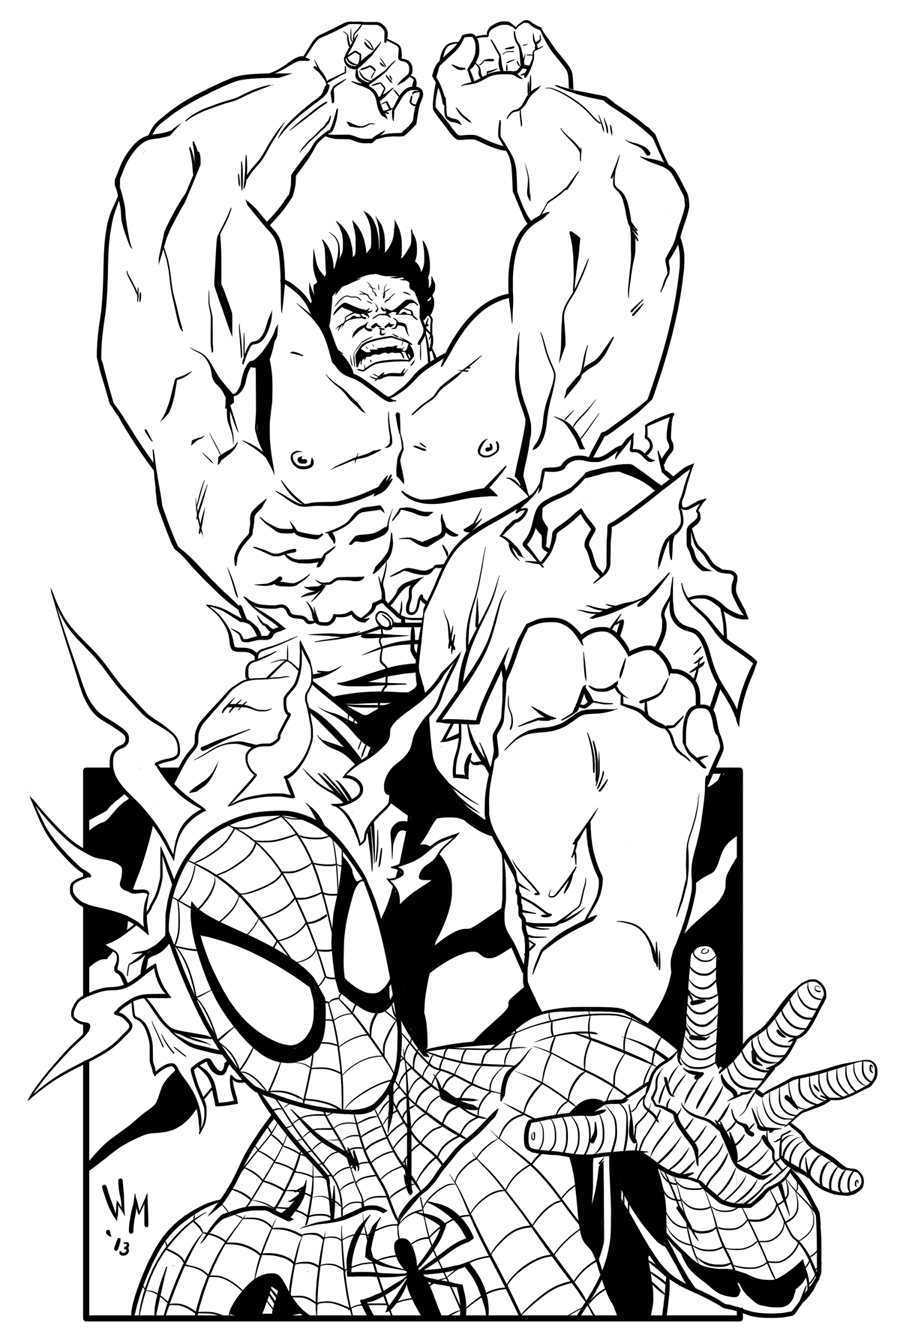 Cartoon Helden Kleurplaat Hulk Vs Spider Man By Quibly On Deviantart